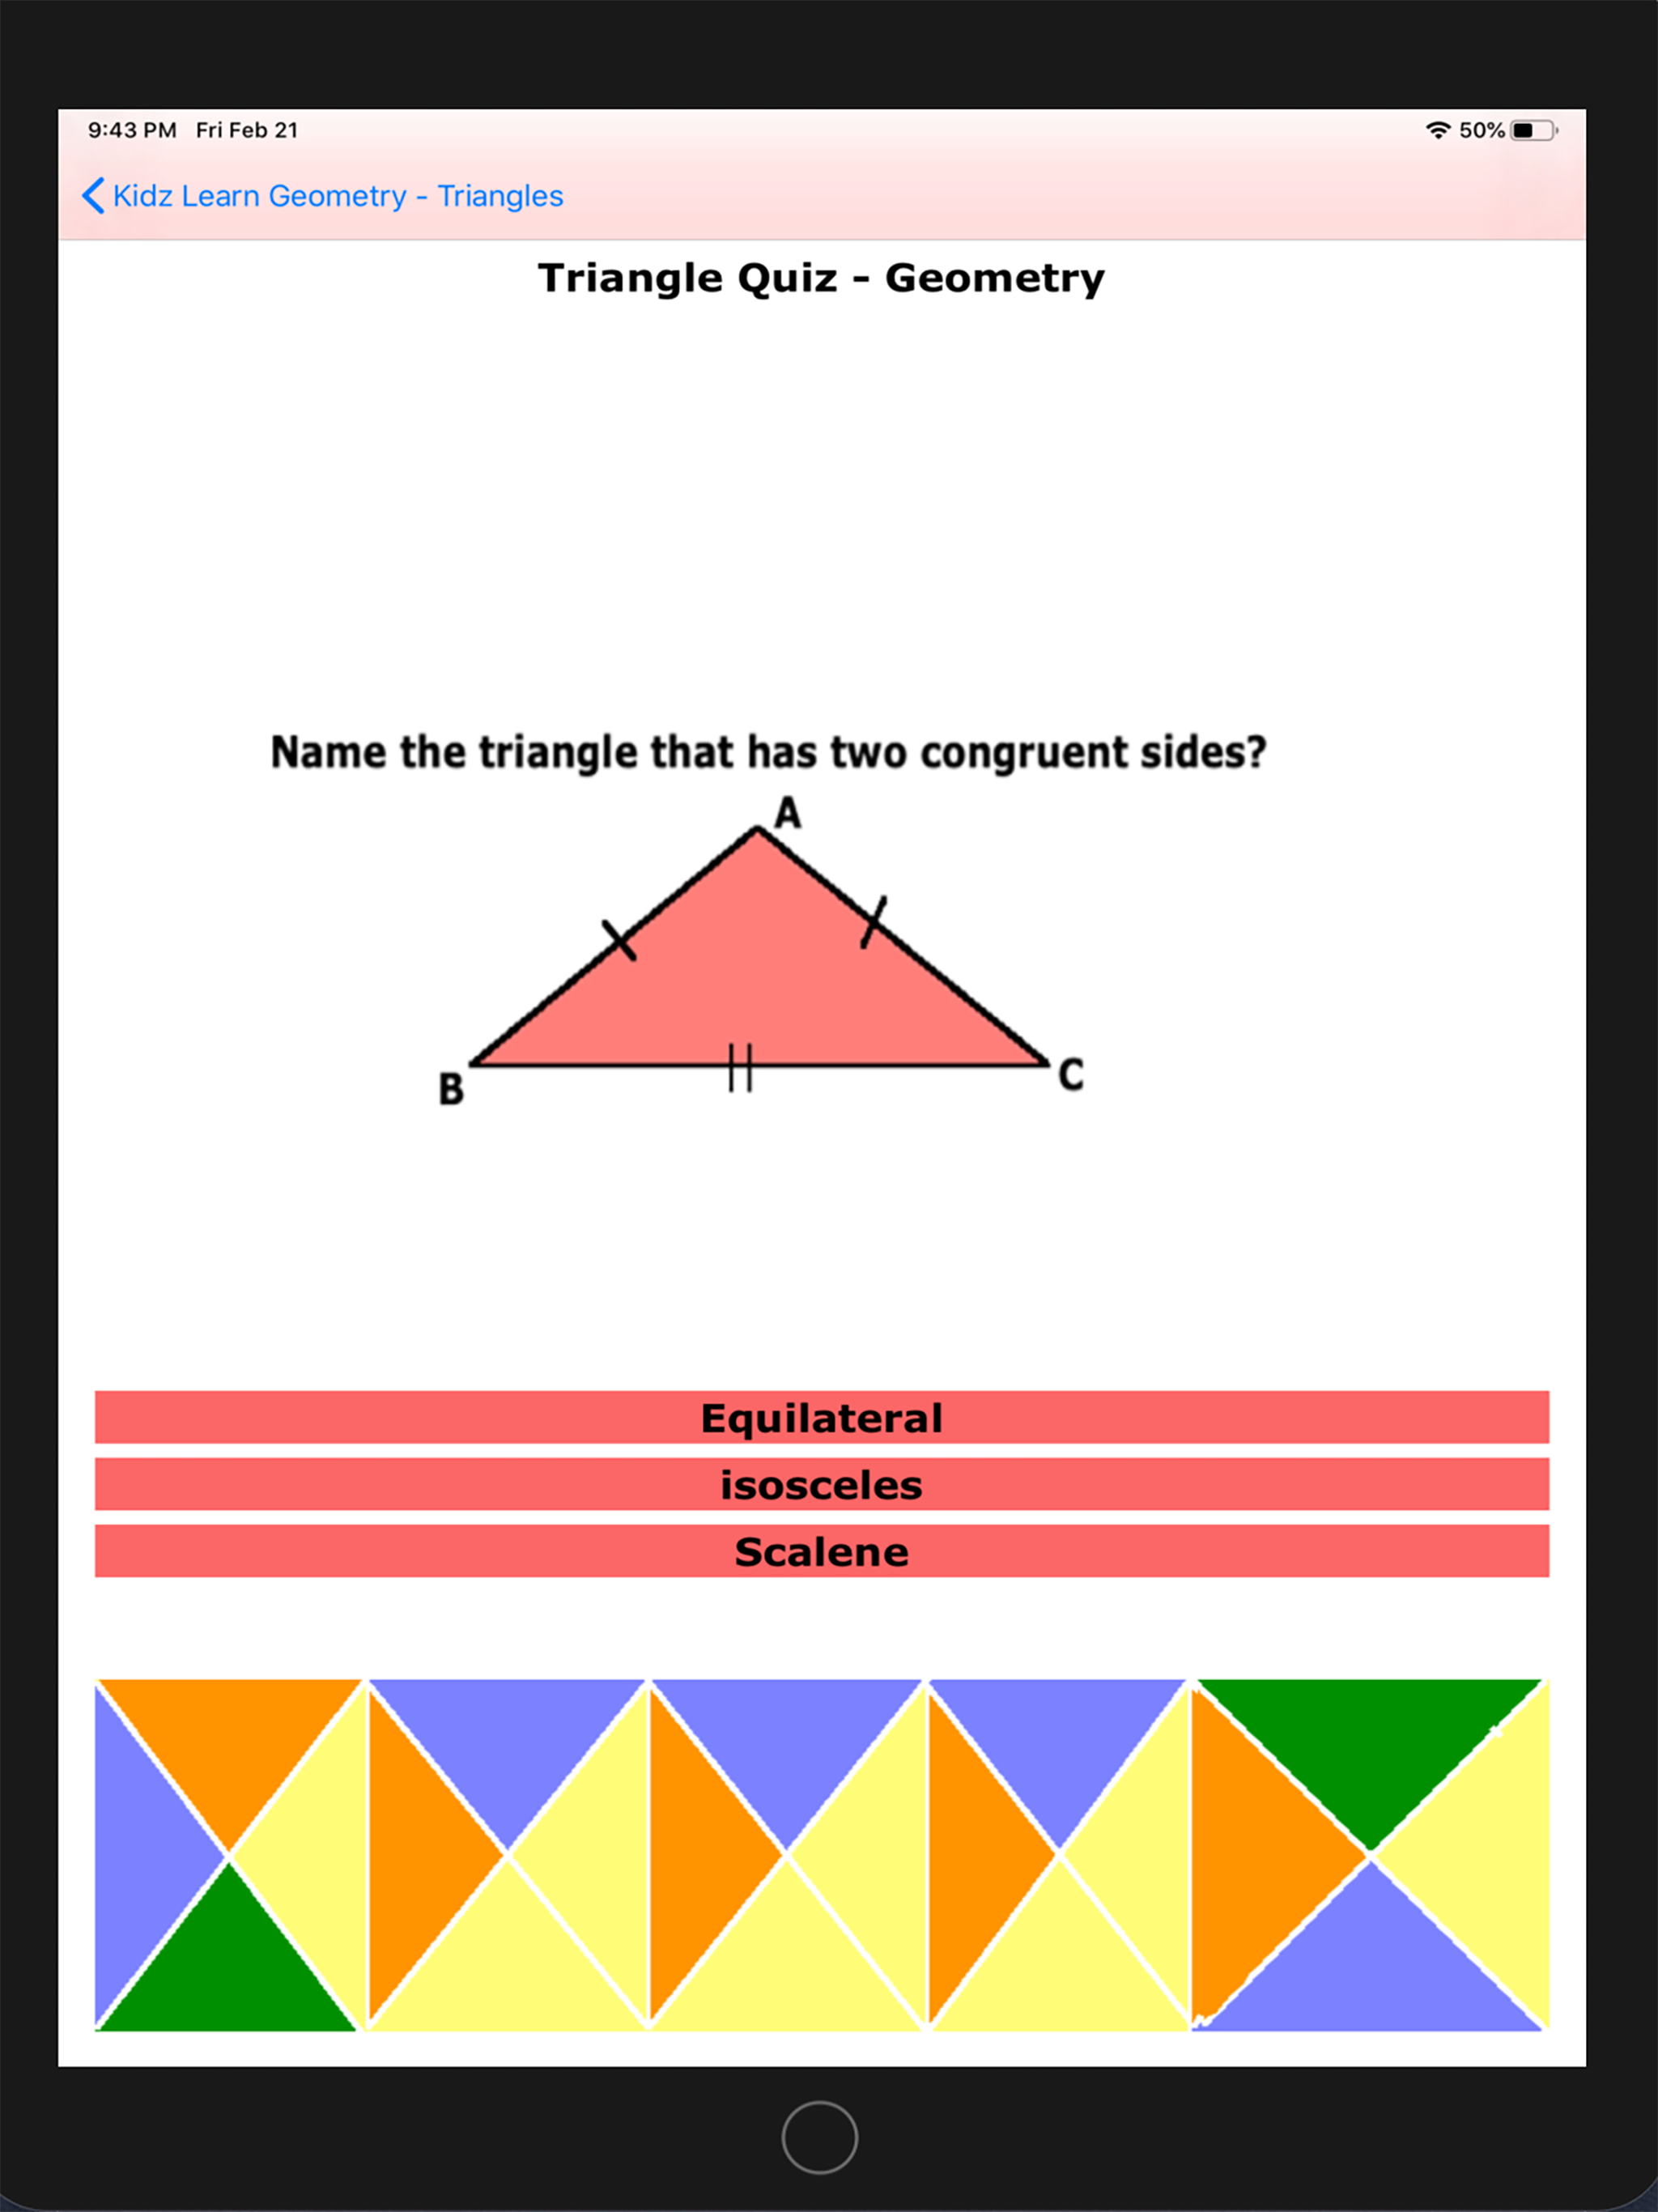 Triangles in Geometry